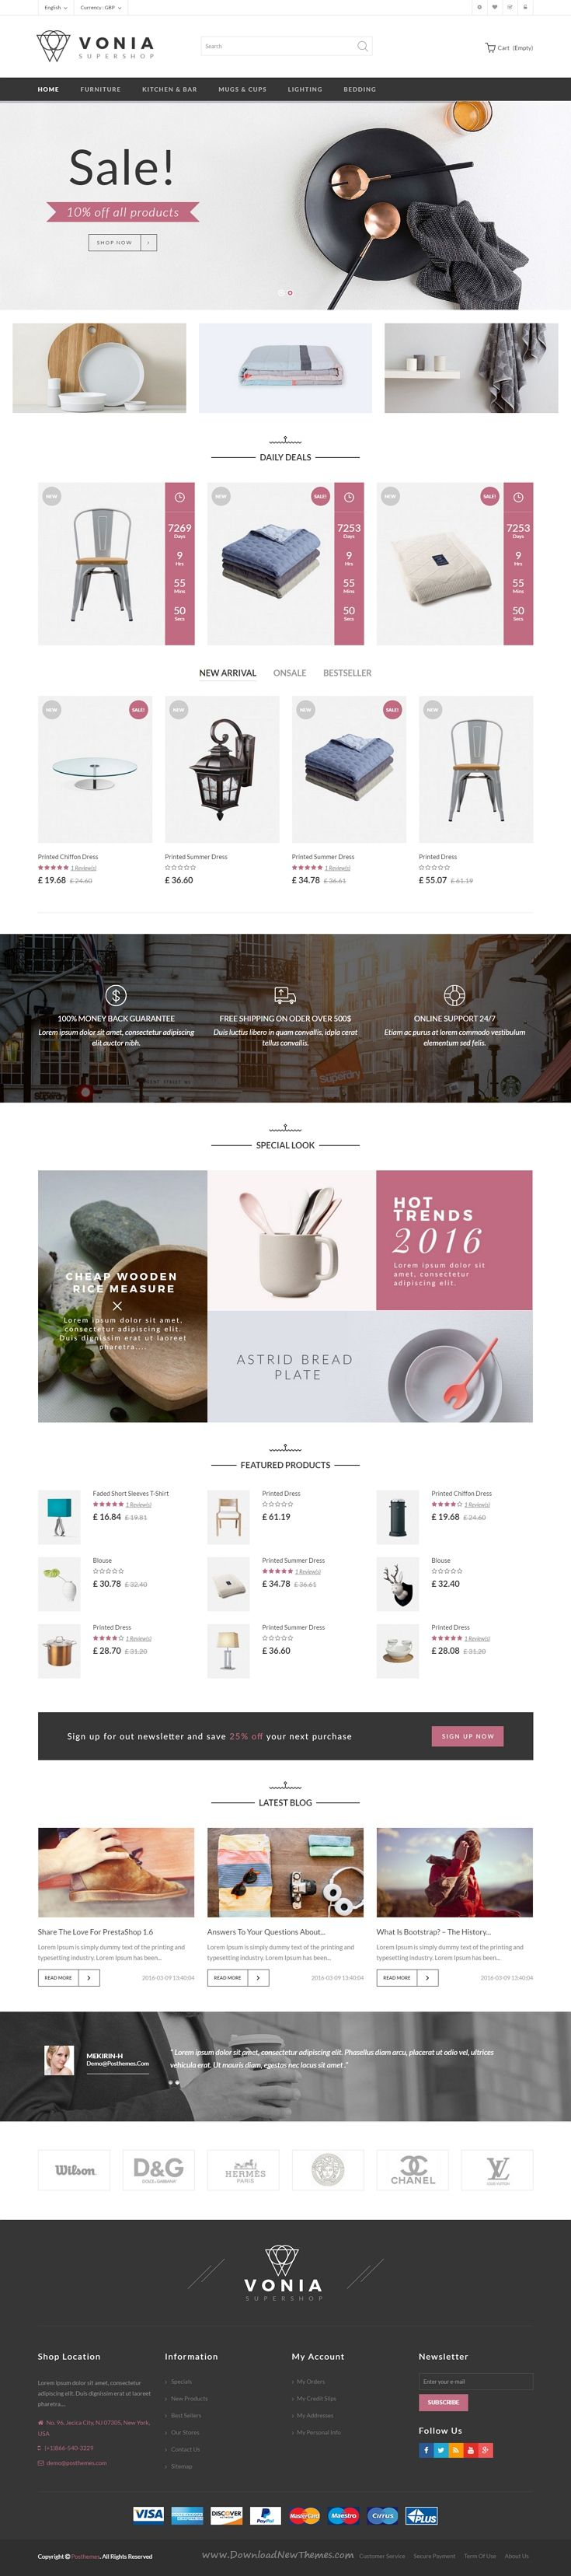 Vonia Responsive #Prestashop Theme is dedicated to interior design and furniture Shop #Website. It comes with 4 stunning homepage layouts. #eCommerce